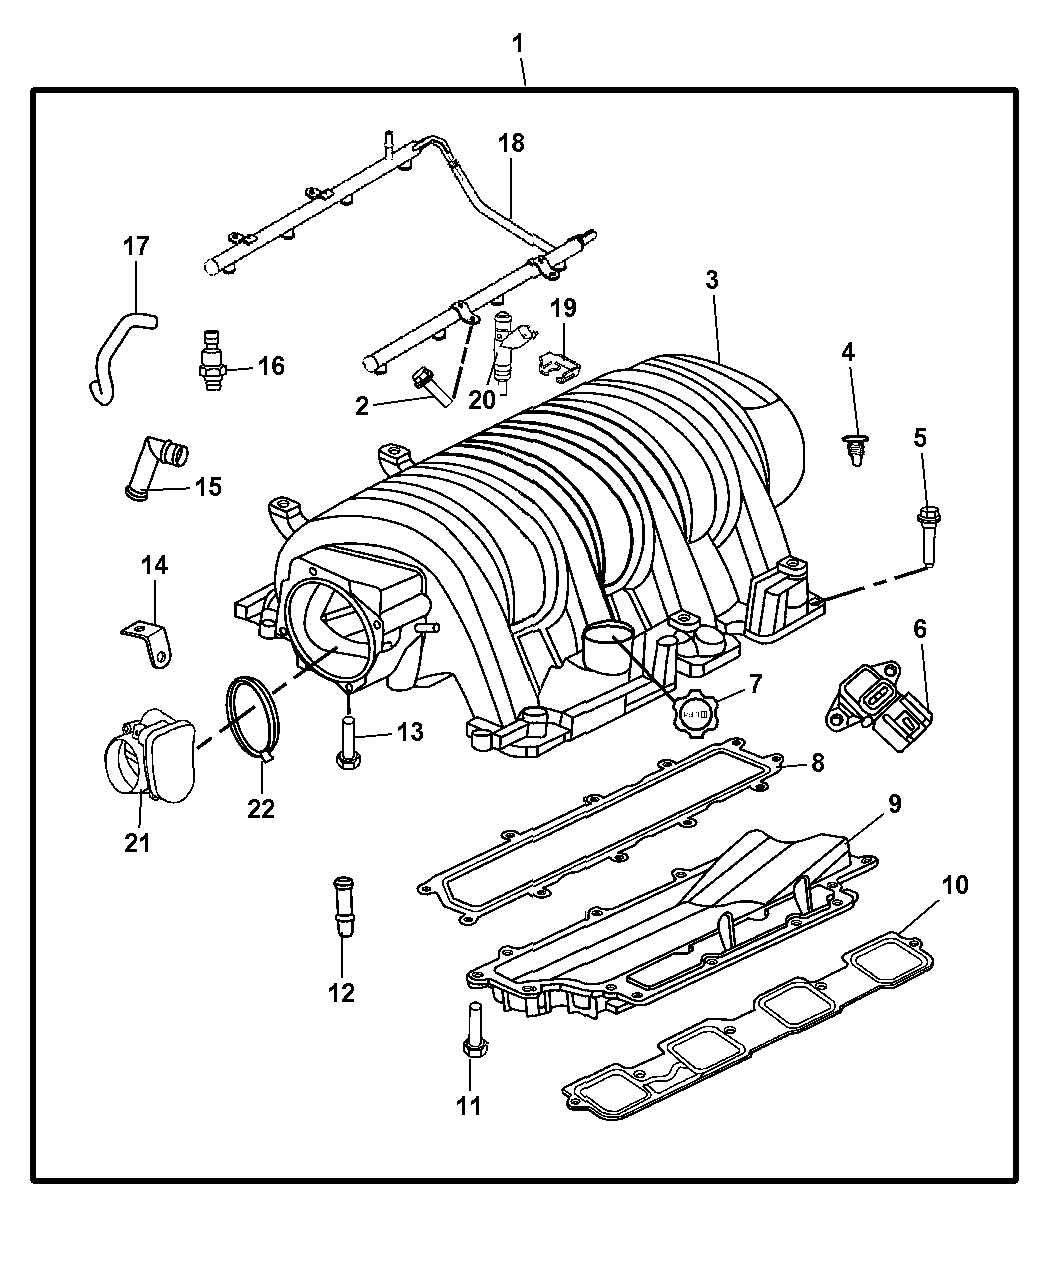 2009 jeep grand cherokee engine diagram 2009 jeep grand cherokee engine diagram wiring diagrams site  2009 jeep grand cherokee engine diagram